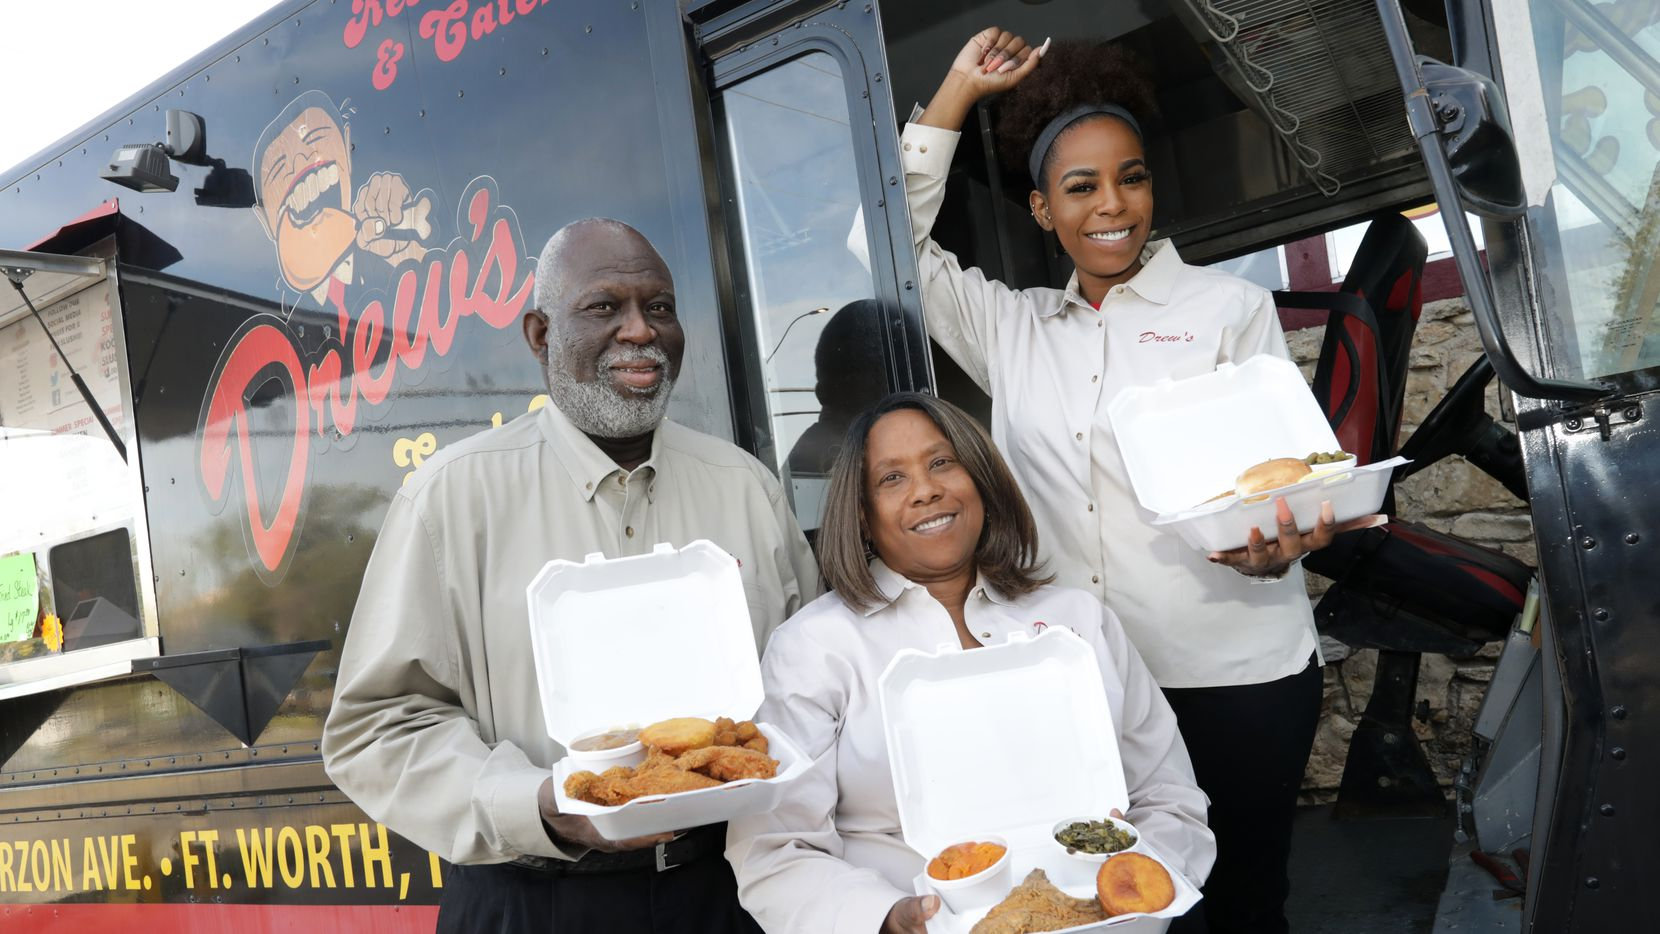 Drew Thomas, left, Stephanie Thomas, and Krystal Thomas pose for a photograph at Drew's Place